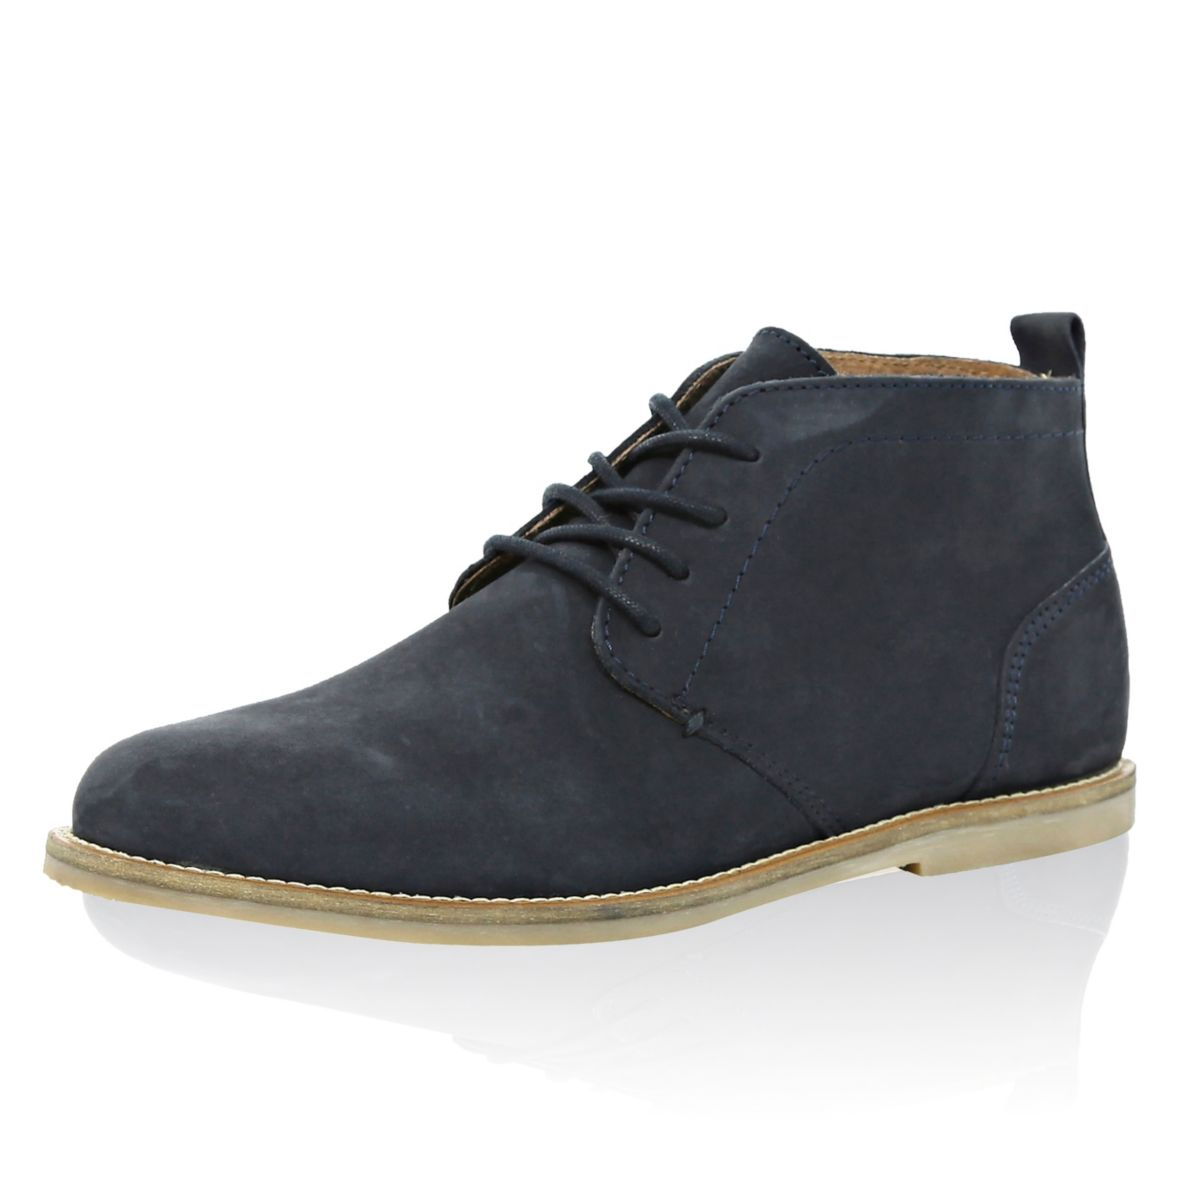 Five Ways to Wear One: The Chukka Boot By Beau Hayhoe. Disclosure: This article may contain affiliate links Last updated on May 6th, Utilizing the same navy knit tie from The Tie Bar as used above, this outfit turns heads because of the subtle tweaks it makes on the traditional ensemble.